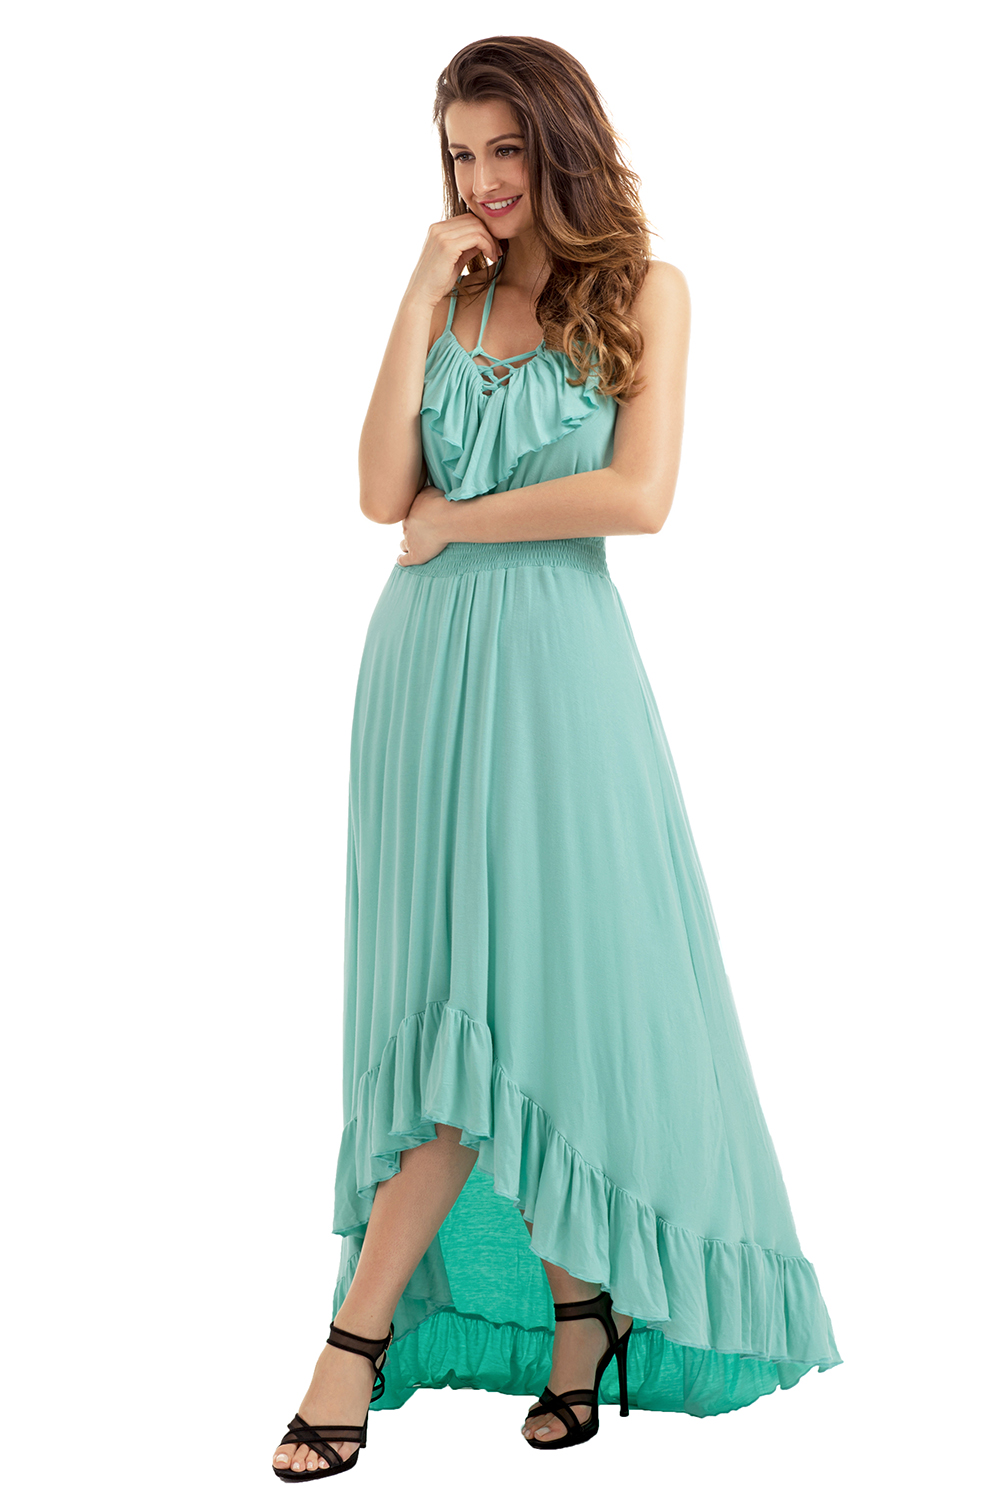 b08aaa364375 Lace up v neck ruffle hi-low maxi dress high low cocktail evening ...